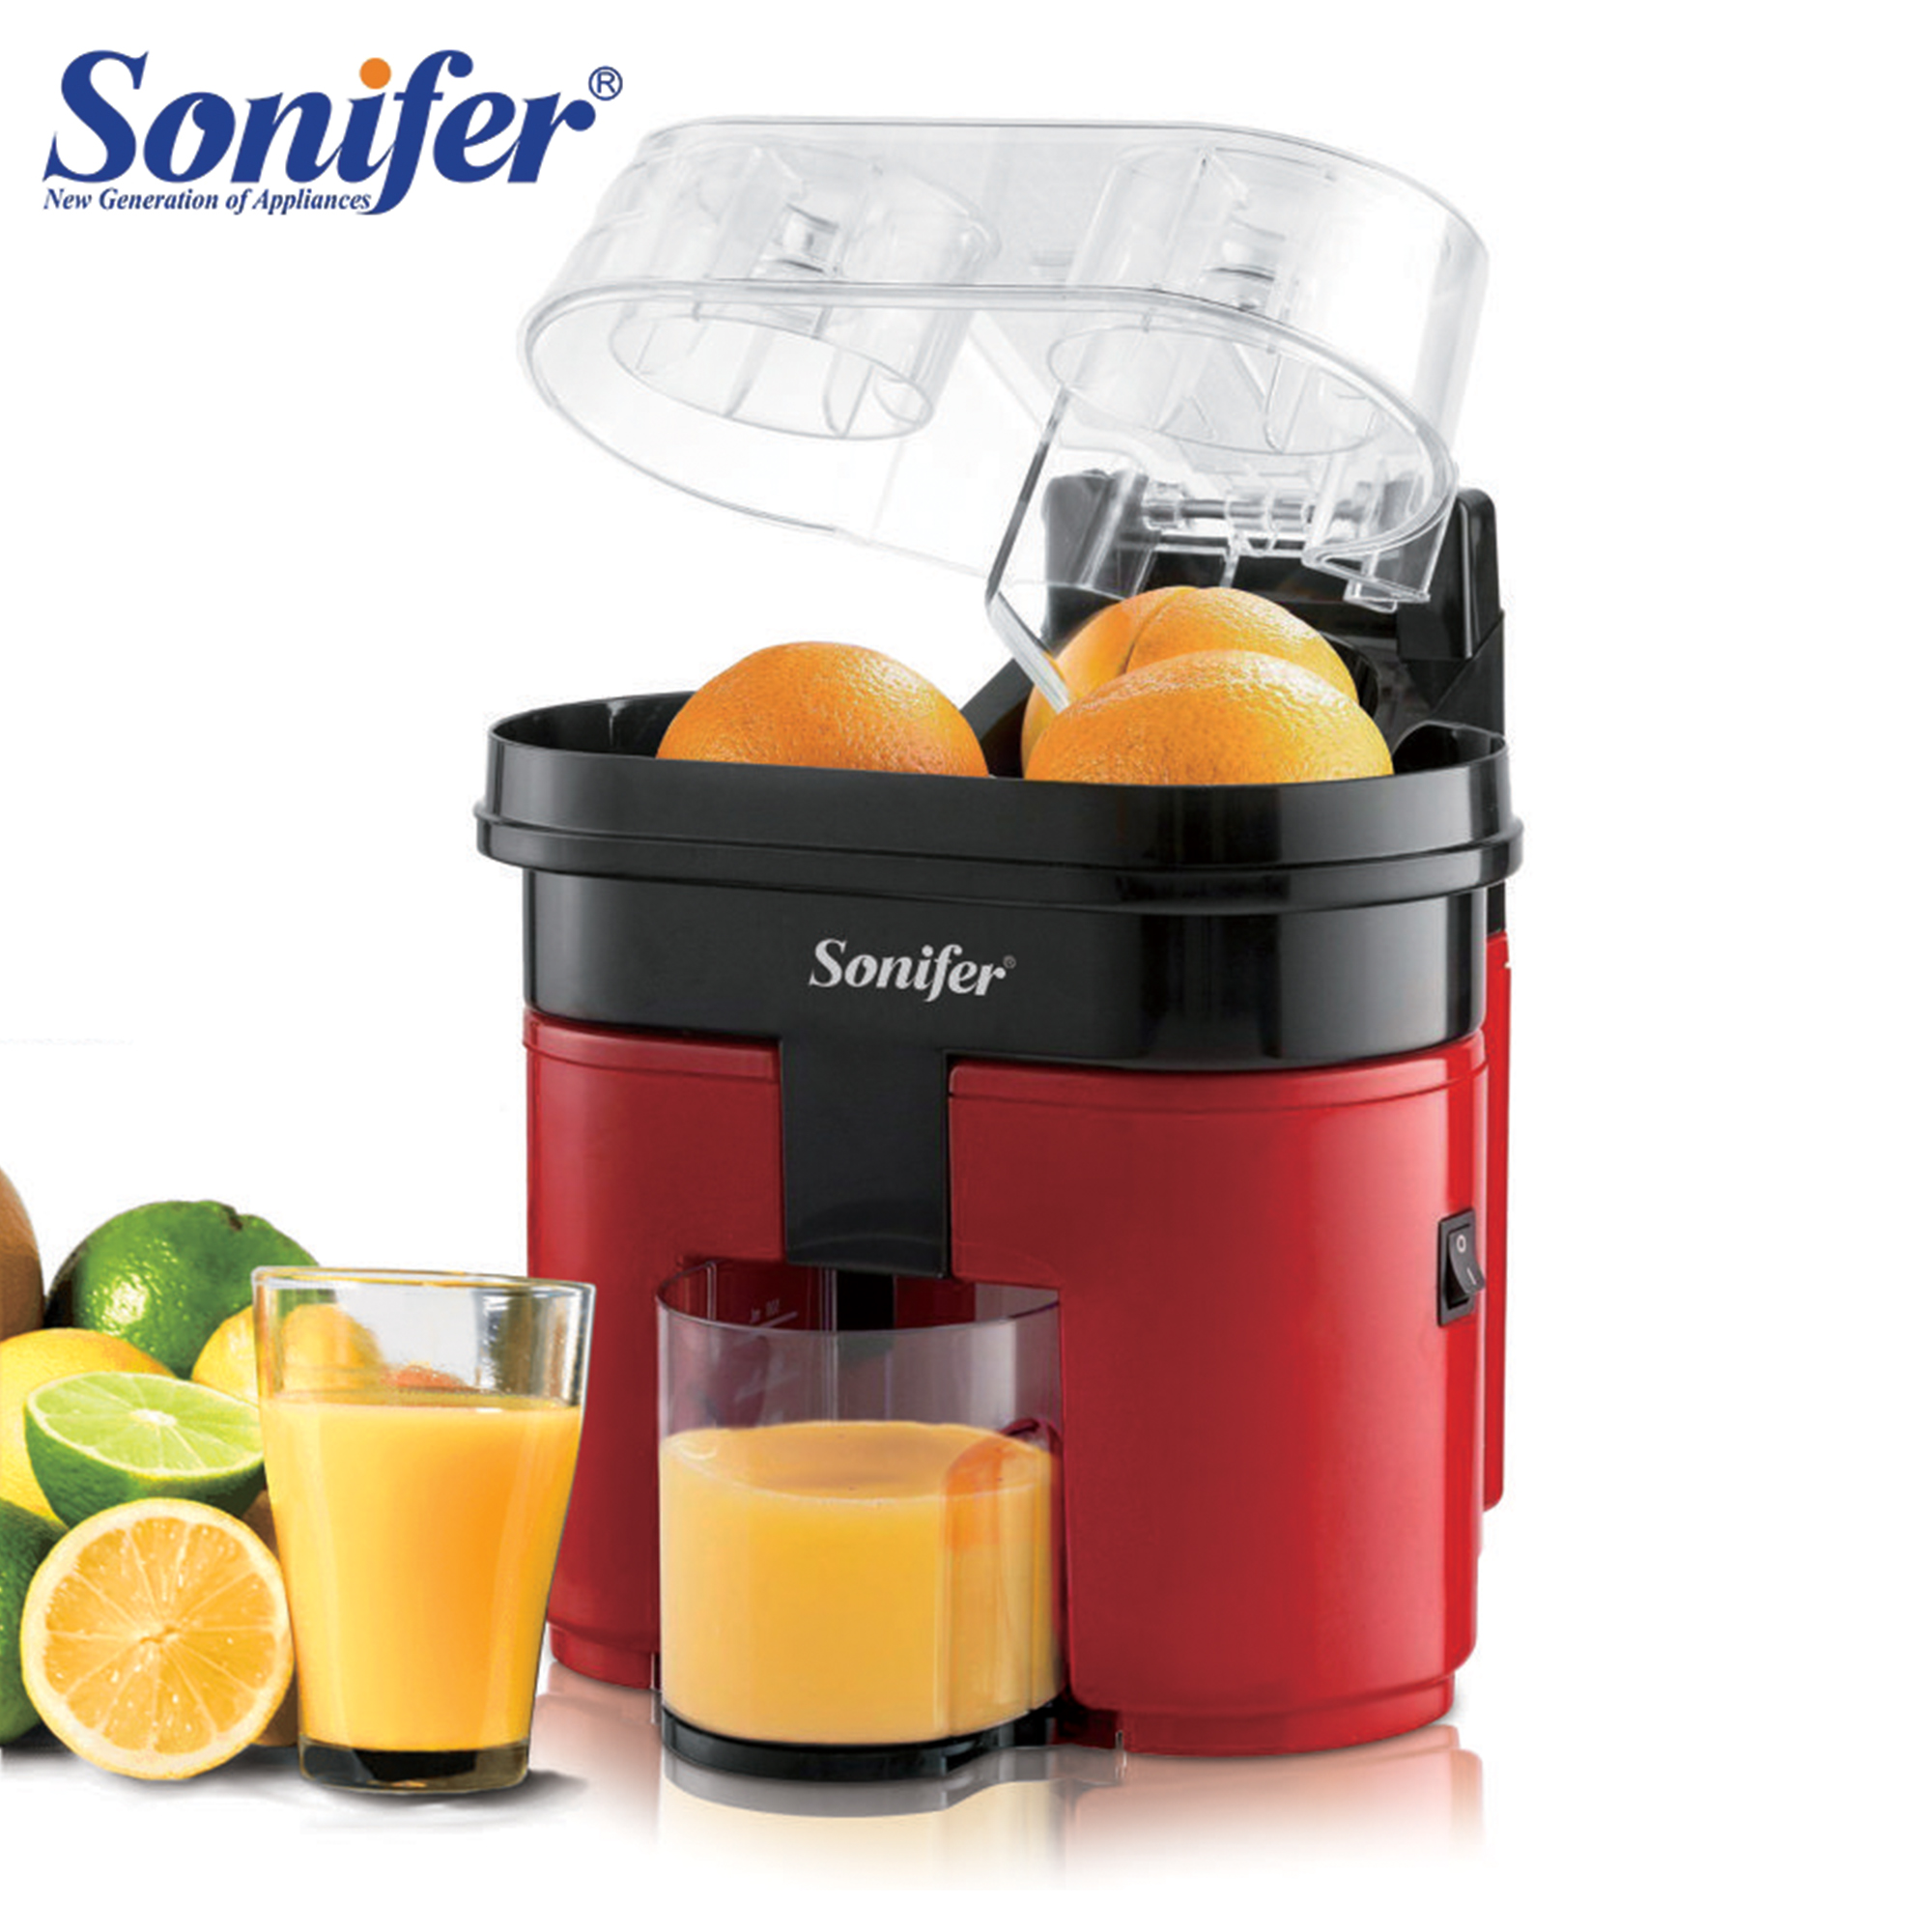 Stainless Steel Orange Lemon Electric Juicers 90W Fruit Squeezer Fresh Juice Household Sonifer